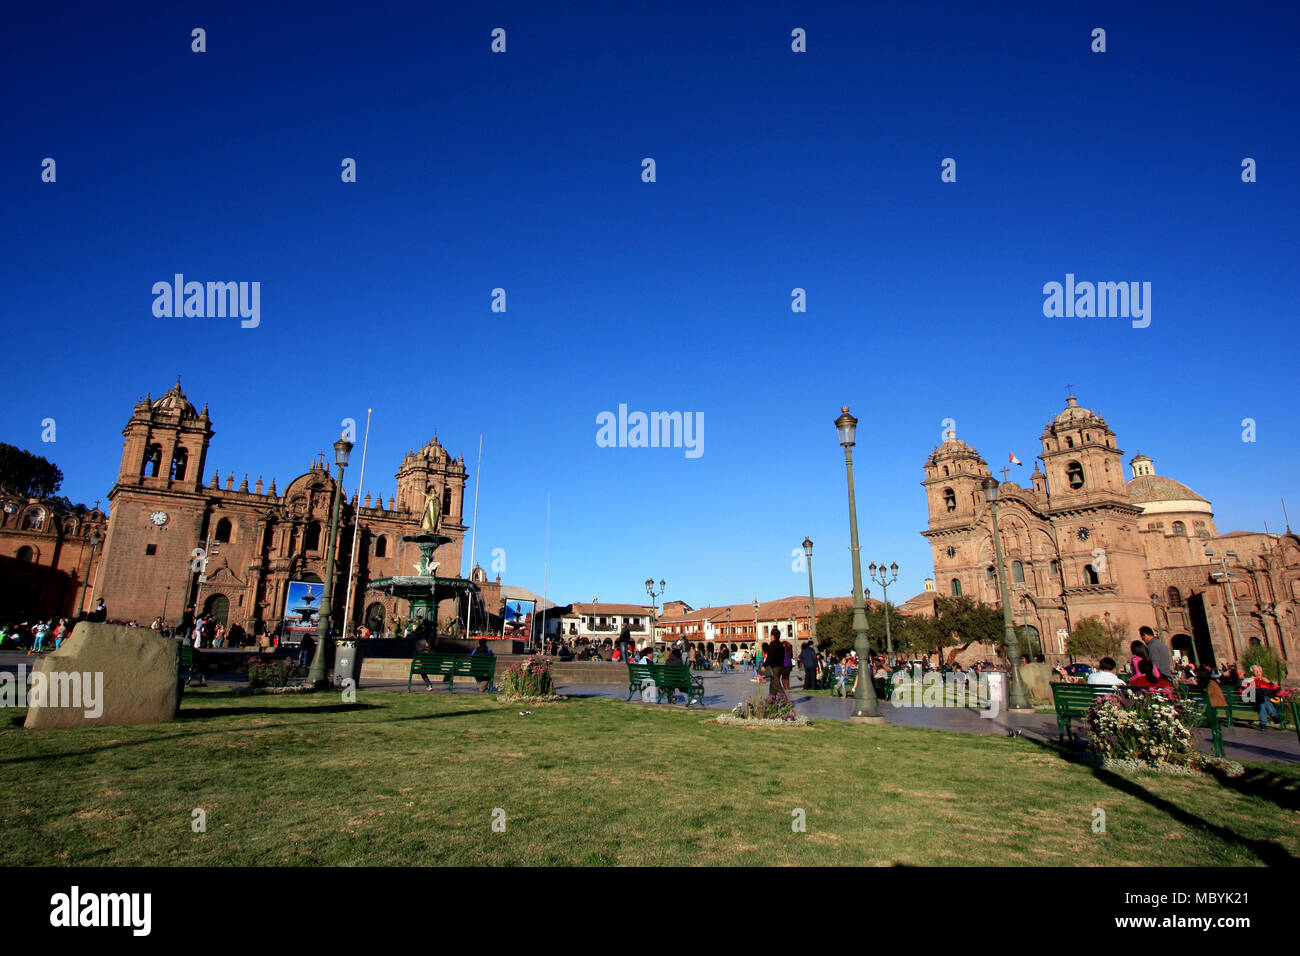 Main Square in front of the two Cathedrals in Cuzco, Peru Stock Photo